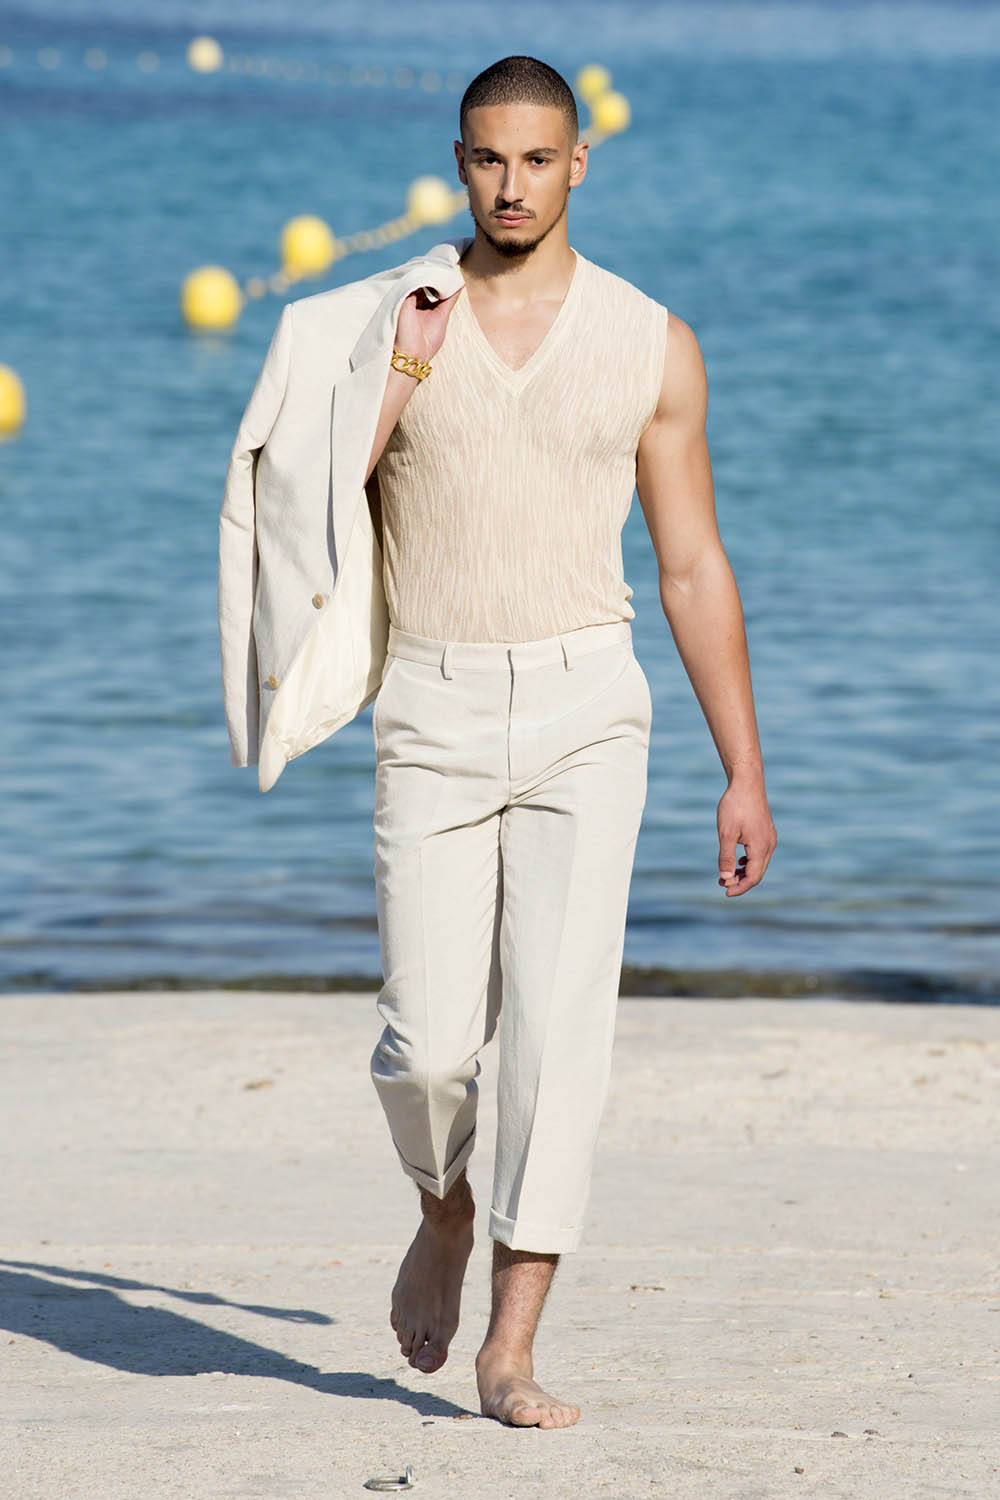 Jacquemus Paris Fashion Week Men's SS19 - Sagaboi - Look 21